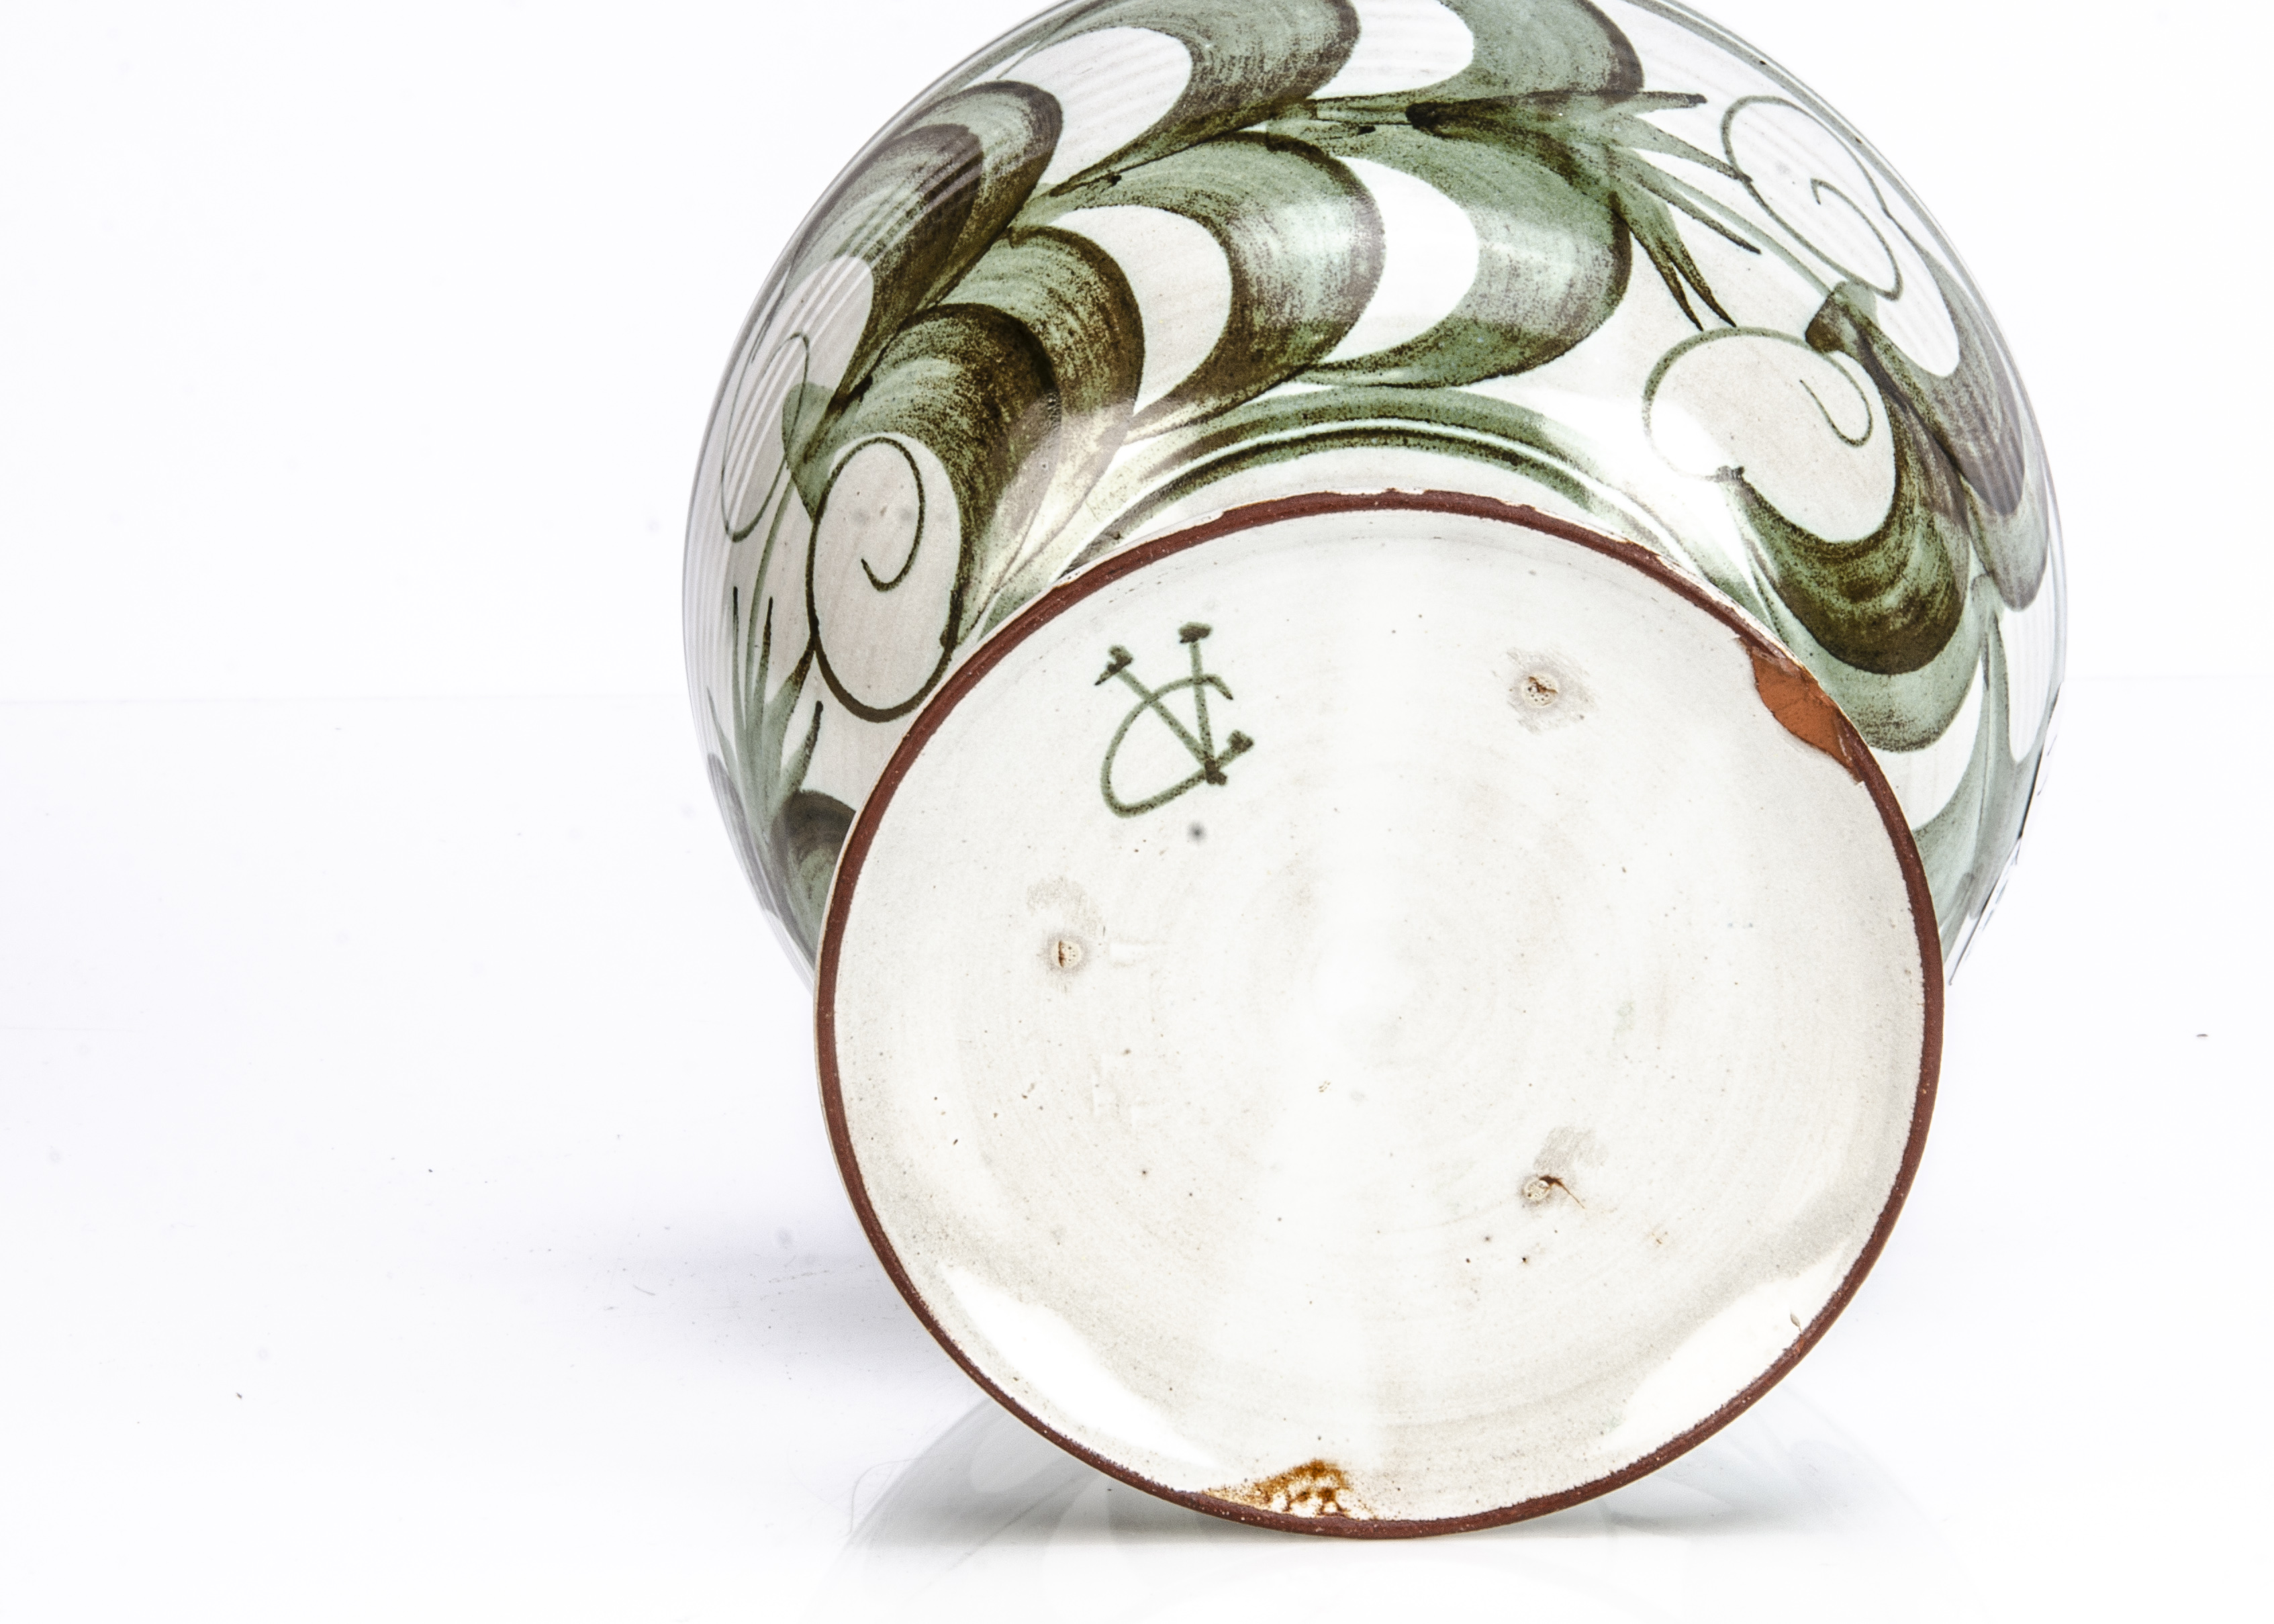 An Aldermaston Pottery footed bowl, with green decoration, signed VC to base, 19.5cm diameter and - Image 2 of 2